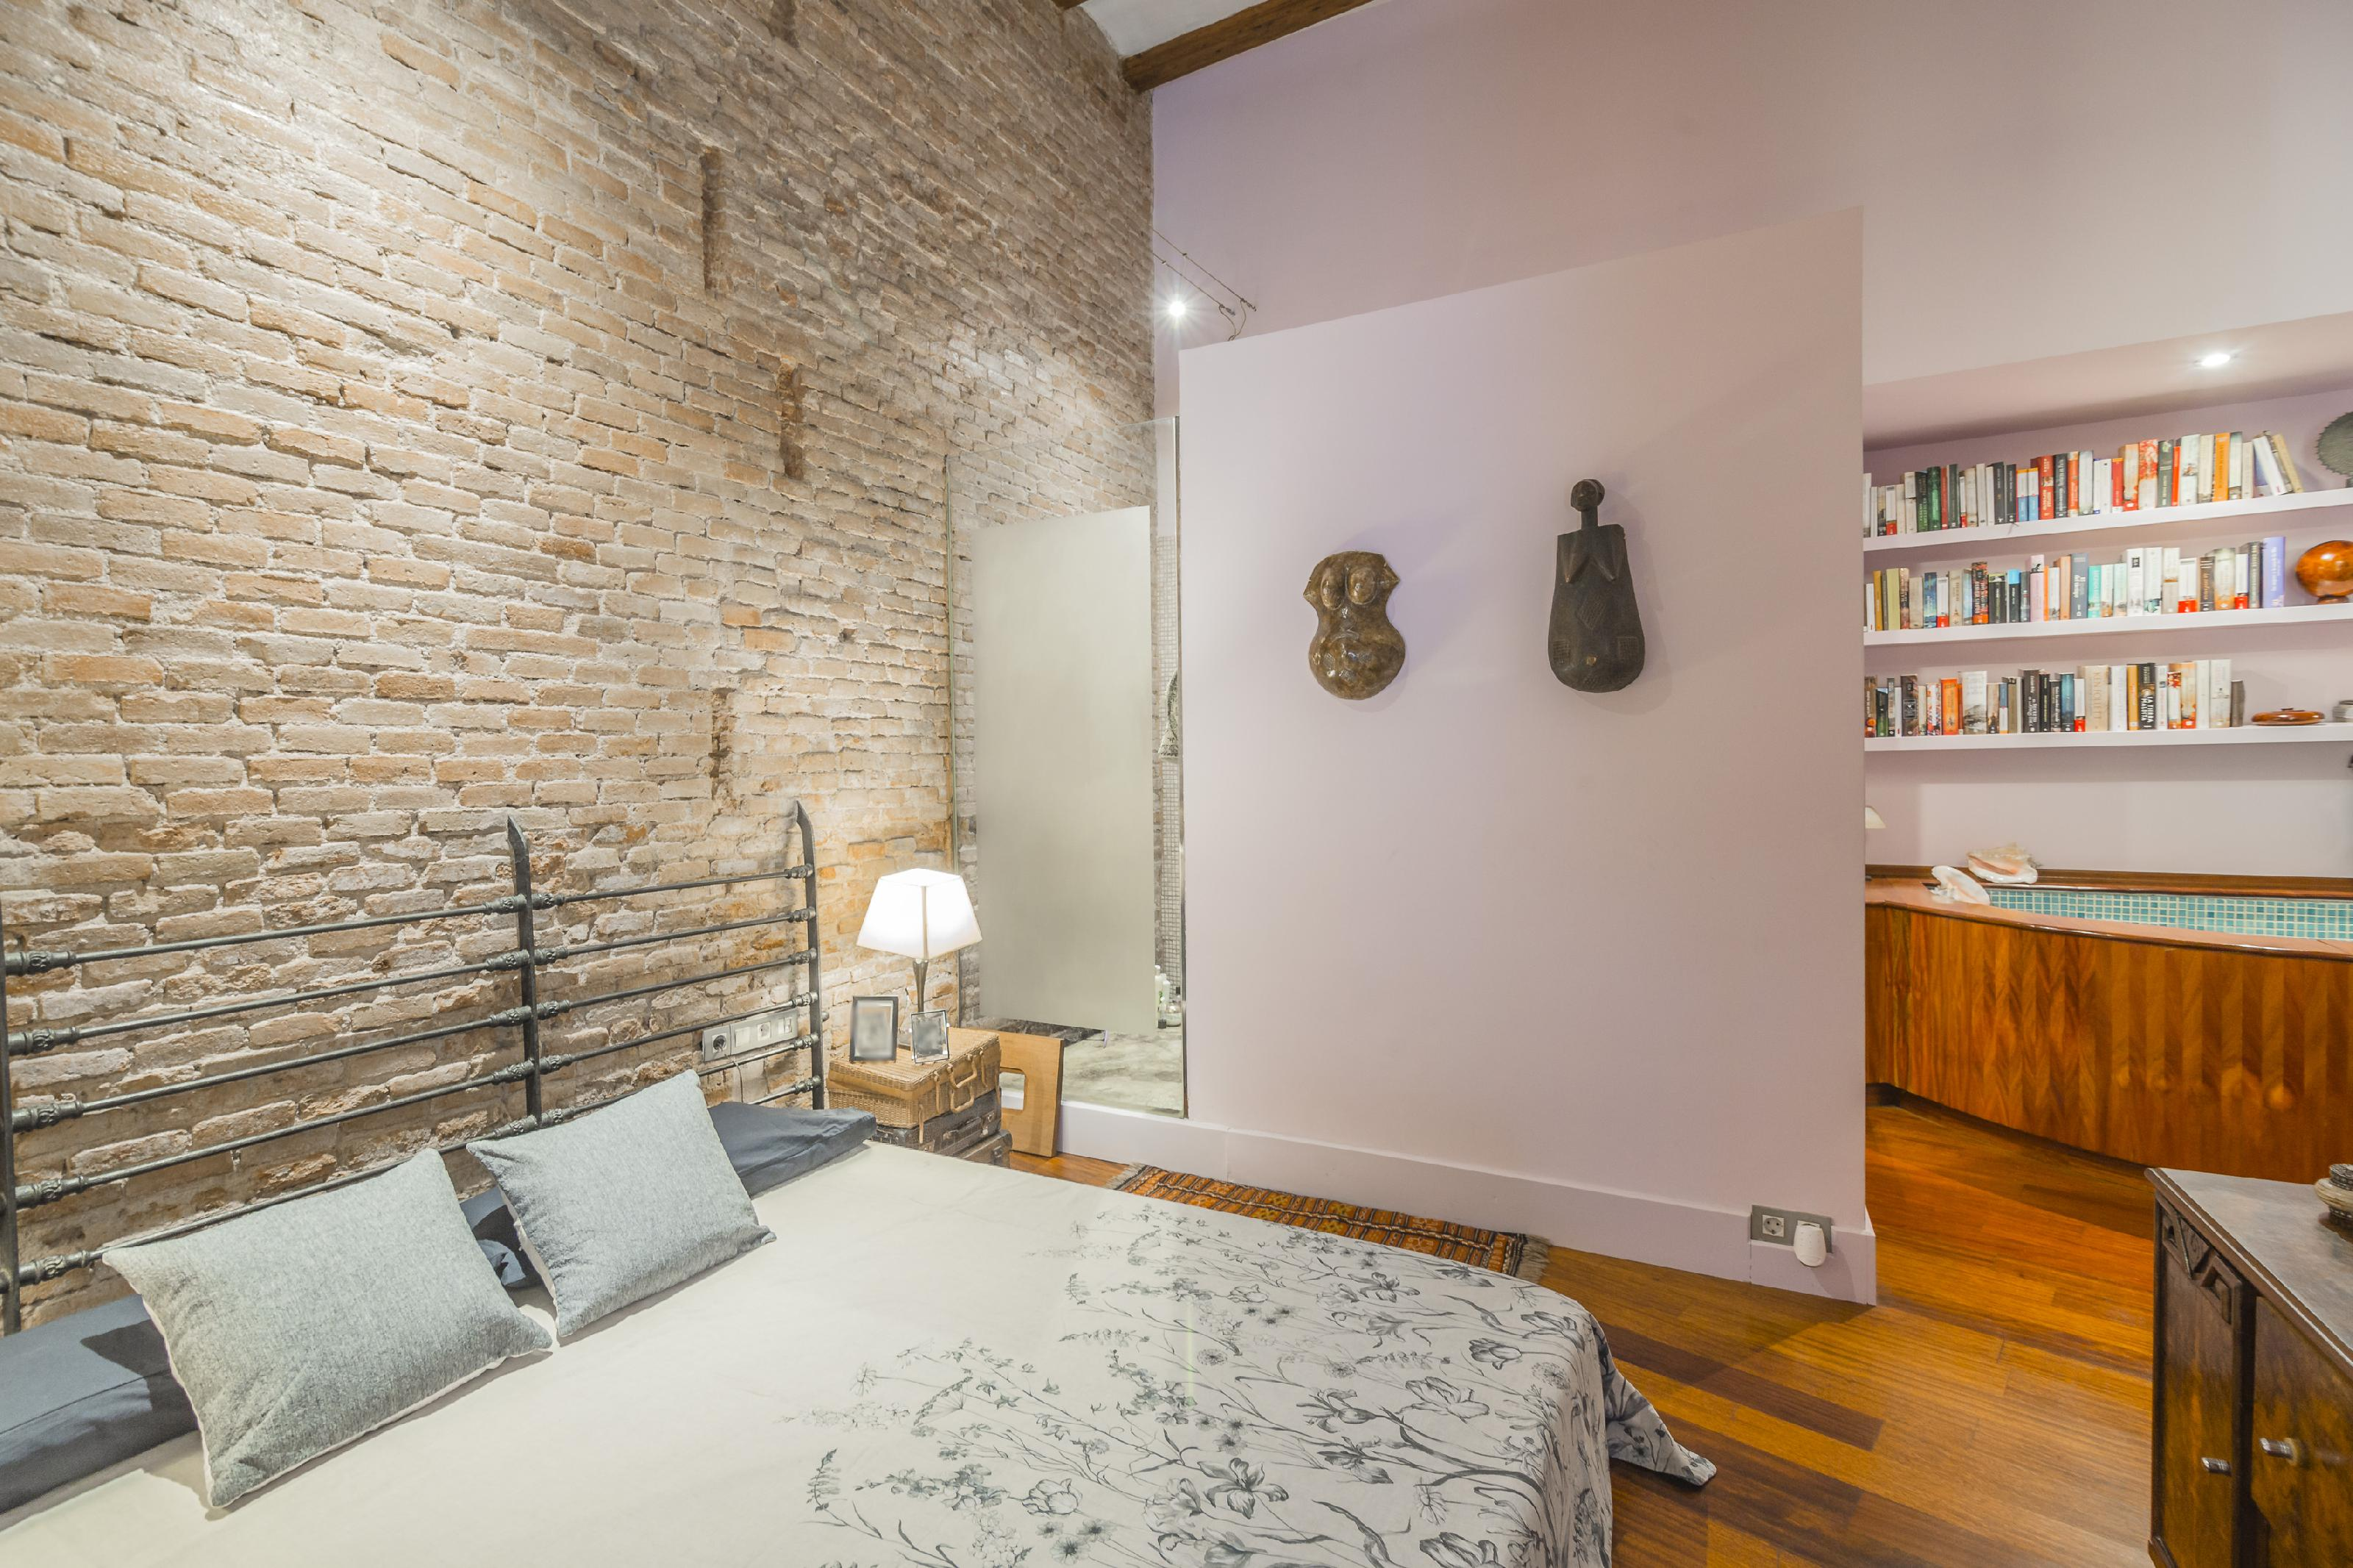 241111 Flat for sale in Ciutat Vella, Barri Gótic 4